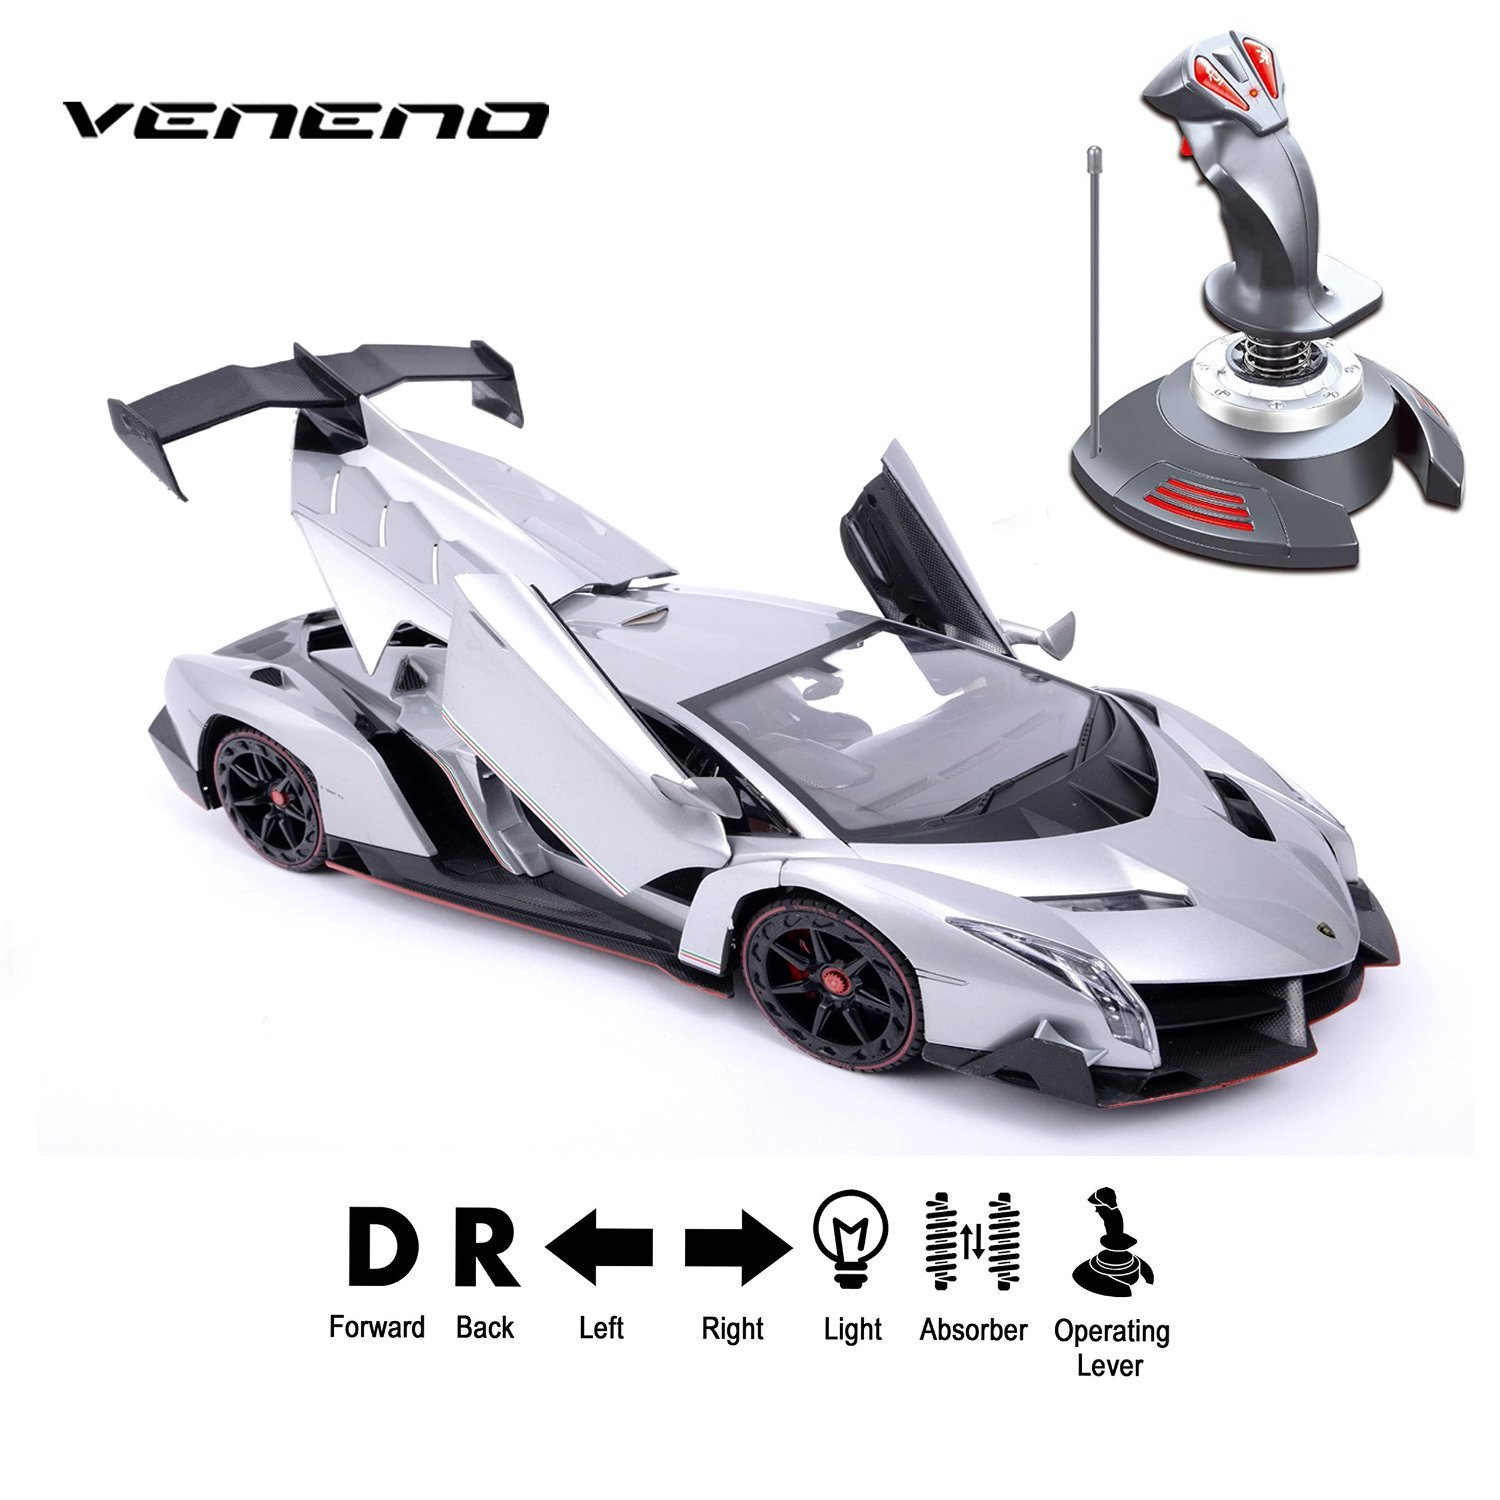 FMT Lamborghini Veneno 1 14 Scale, Gravity Sensor Radio Control Vehicle Model Car RC by